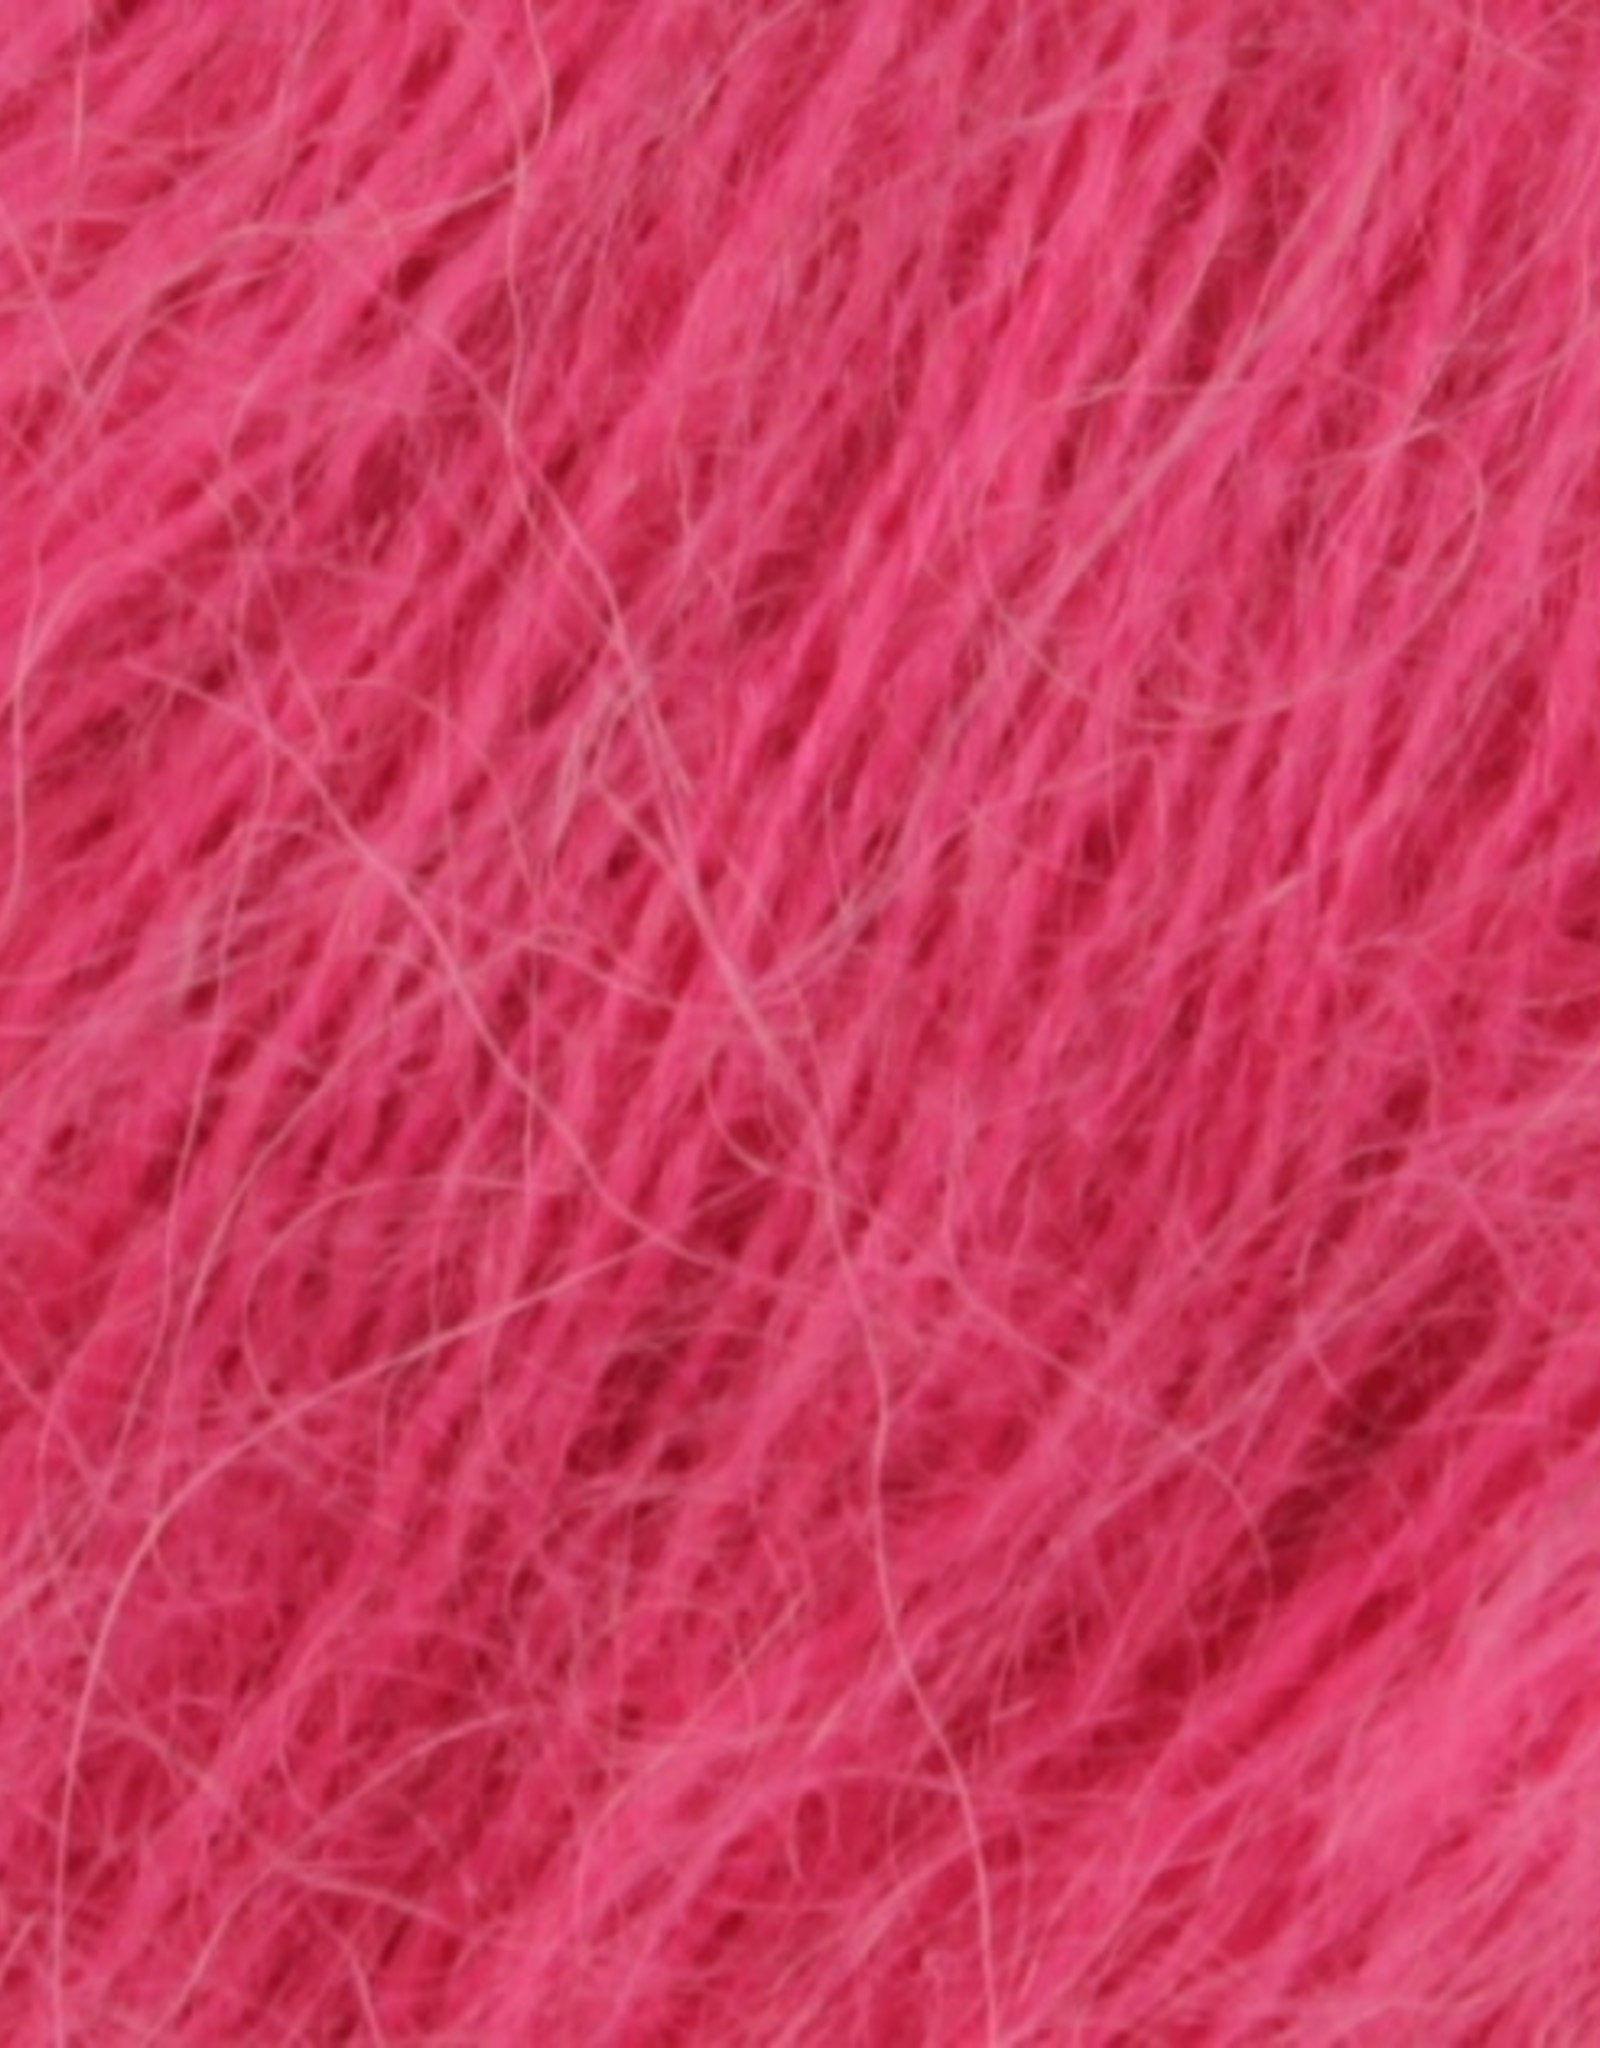 Annell Annell Alpaca Annell  5777 - AARDBEI ROOS